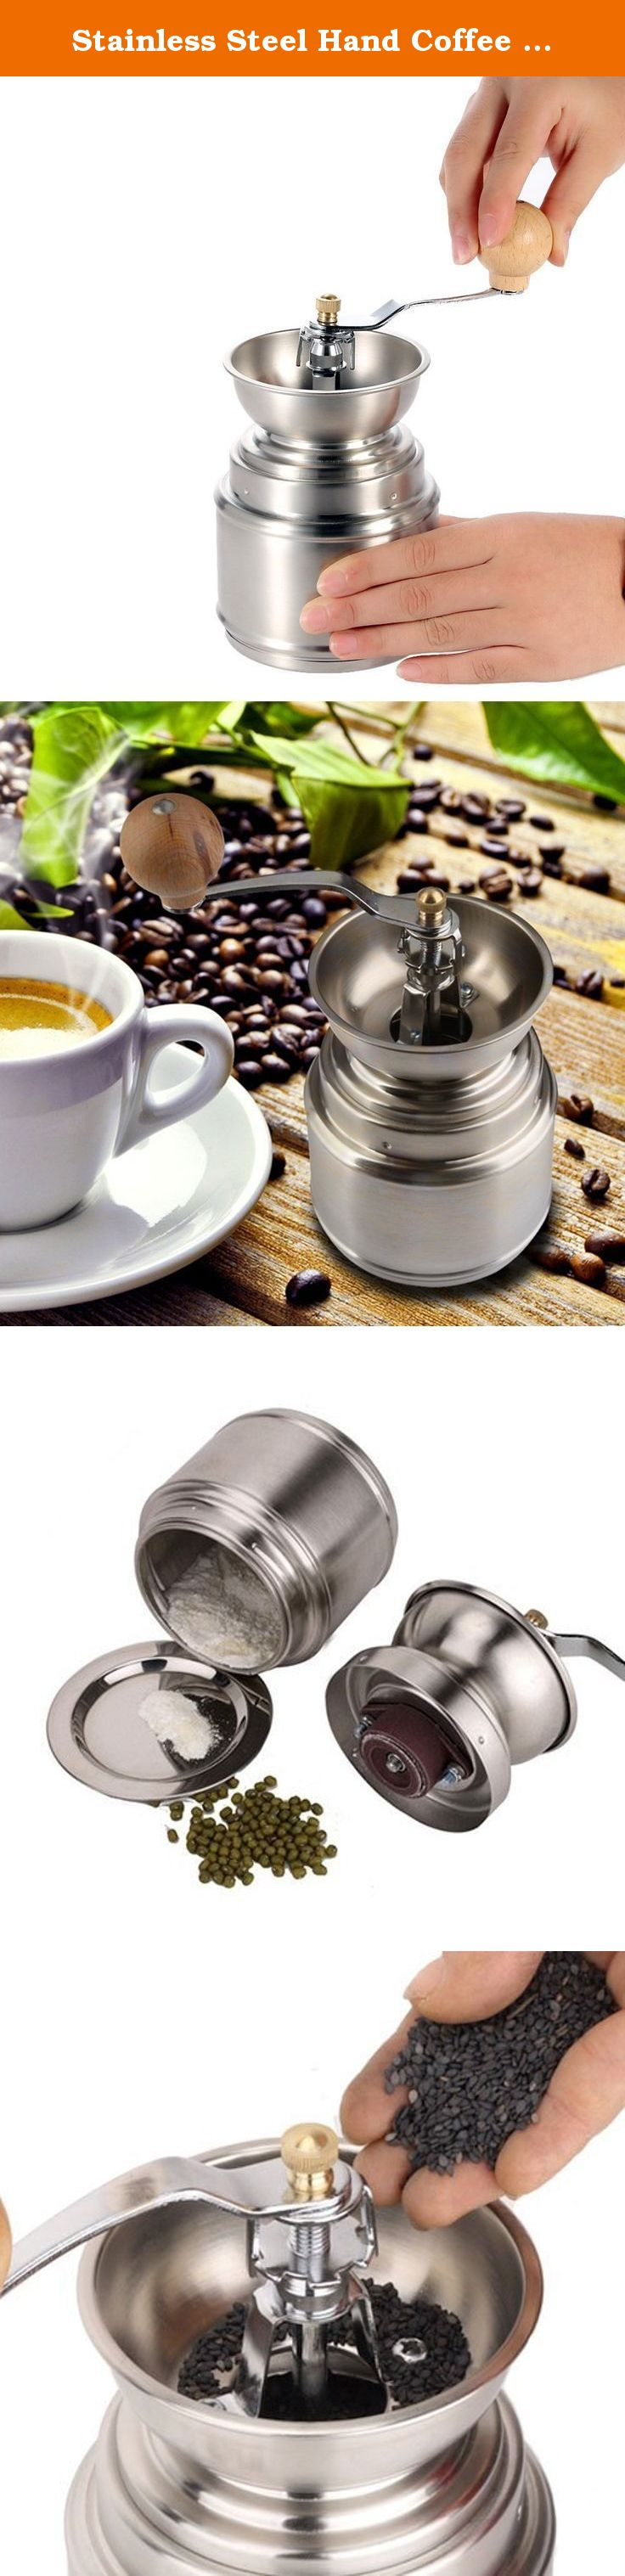 Stainless Steel Hand Coffee Grinder,Spice Pepper Coffee Bean Grinder Mill. This is a labor-saving coffee bean grinder and can get coffee powder in different fineness with adjustable ceramic burr. With it, you can make coffee by yourself and enjoy it happier. When using hand grinder grinding wheel handle design is more time-saving; stainless steel body design, lasting for years; washable, durable ceramic core, thickness adjustable, arbitrary.You can grind coffee beans, sesame, rice, baby…